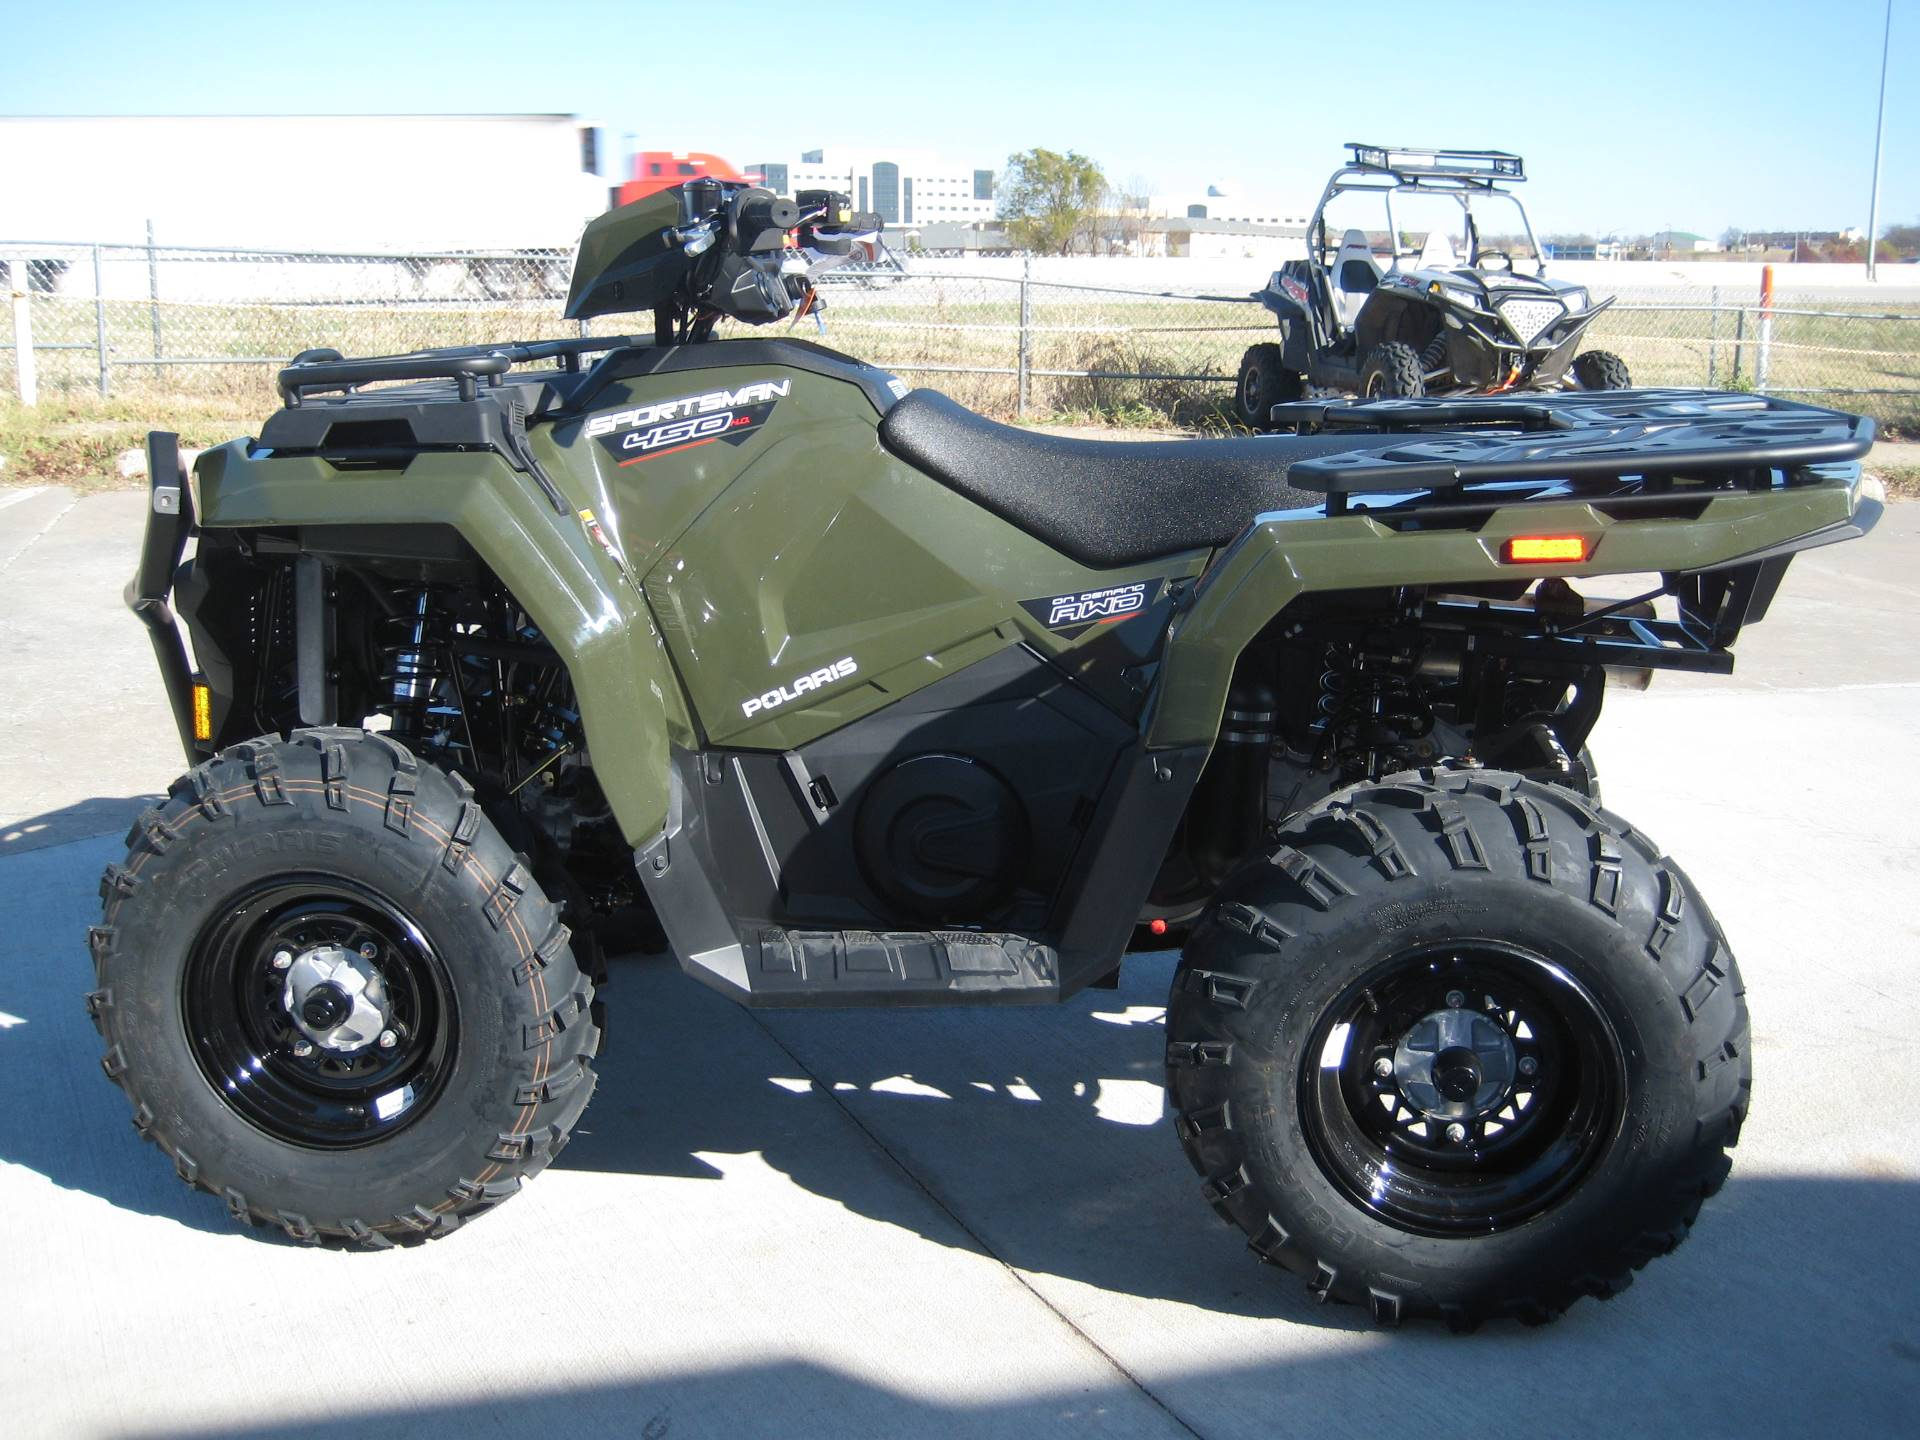 2021 Polaris Sportsman 450 H.O. Utility Package in Broken Arrow, Oklahoma - Photo 1